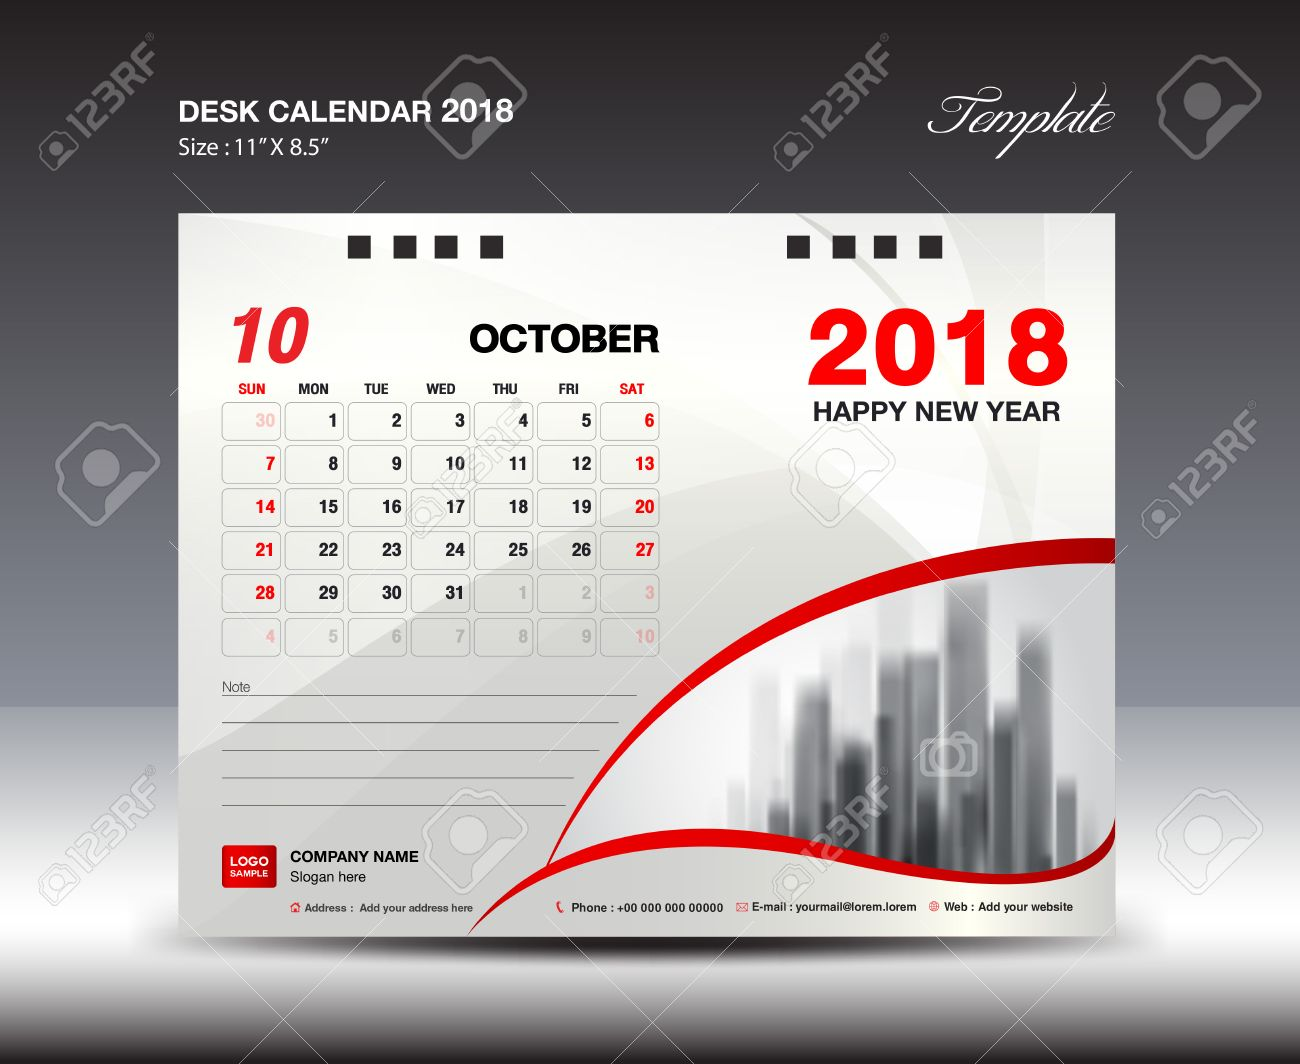 Desk Calendar For 2018 Year, October 2018, Week Starts Monday, Stationery  Design Stock  Calendar Sample Design